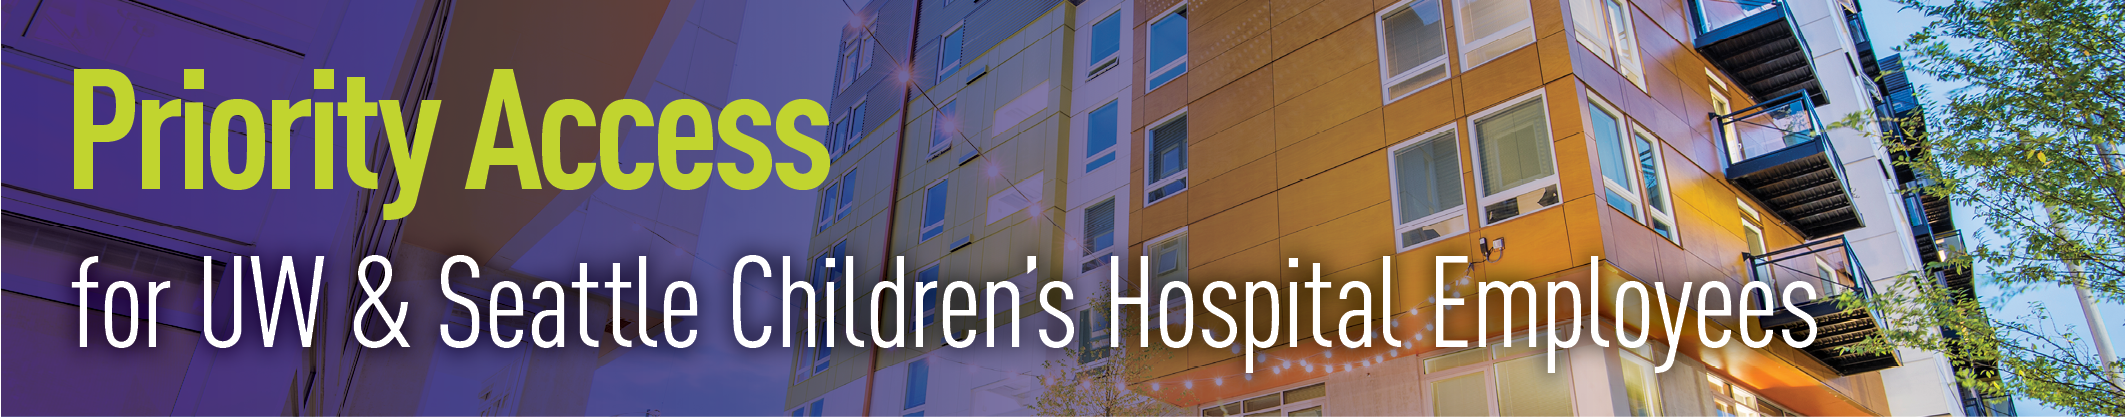 Priority Access for UW & Seattle Children's Hospital Employees